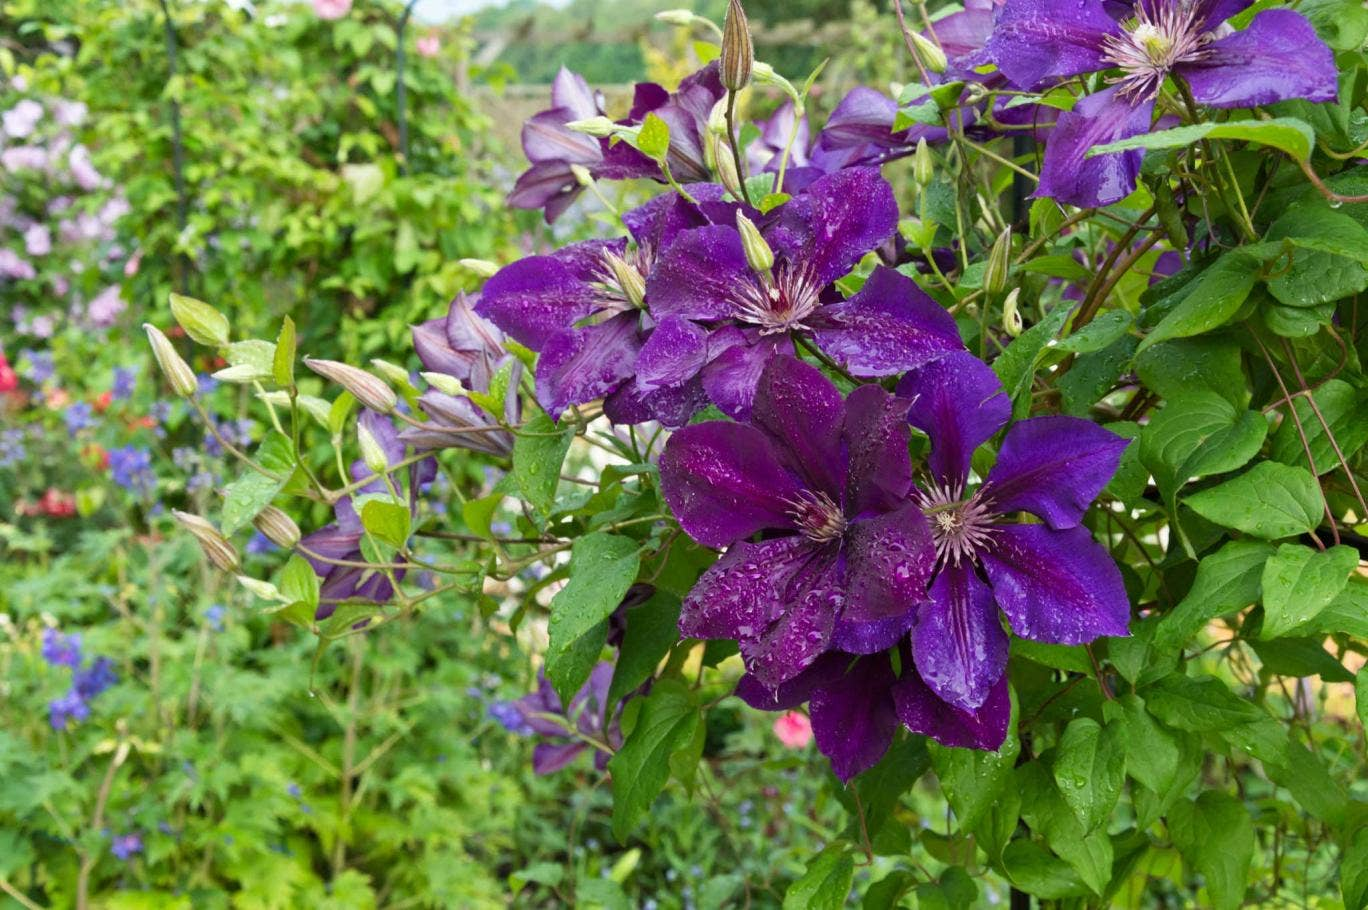 'The President' is extremely vigorous with large flowers of purplish-blue